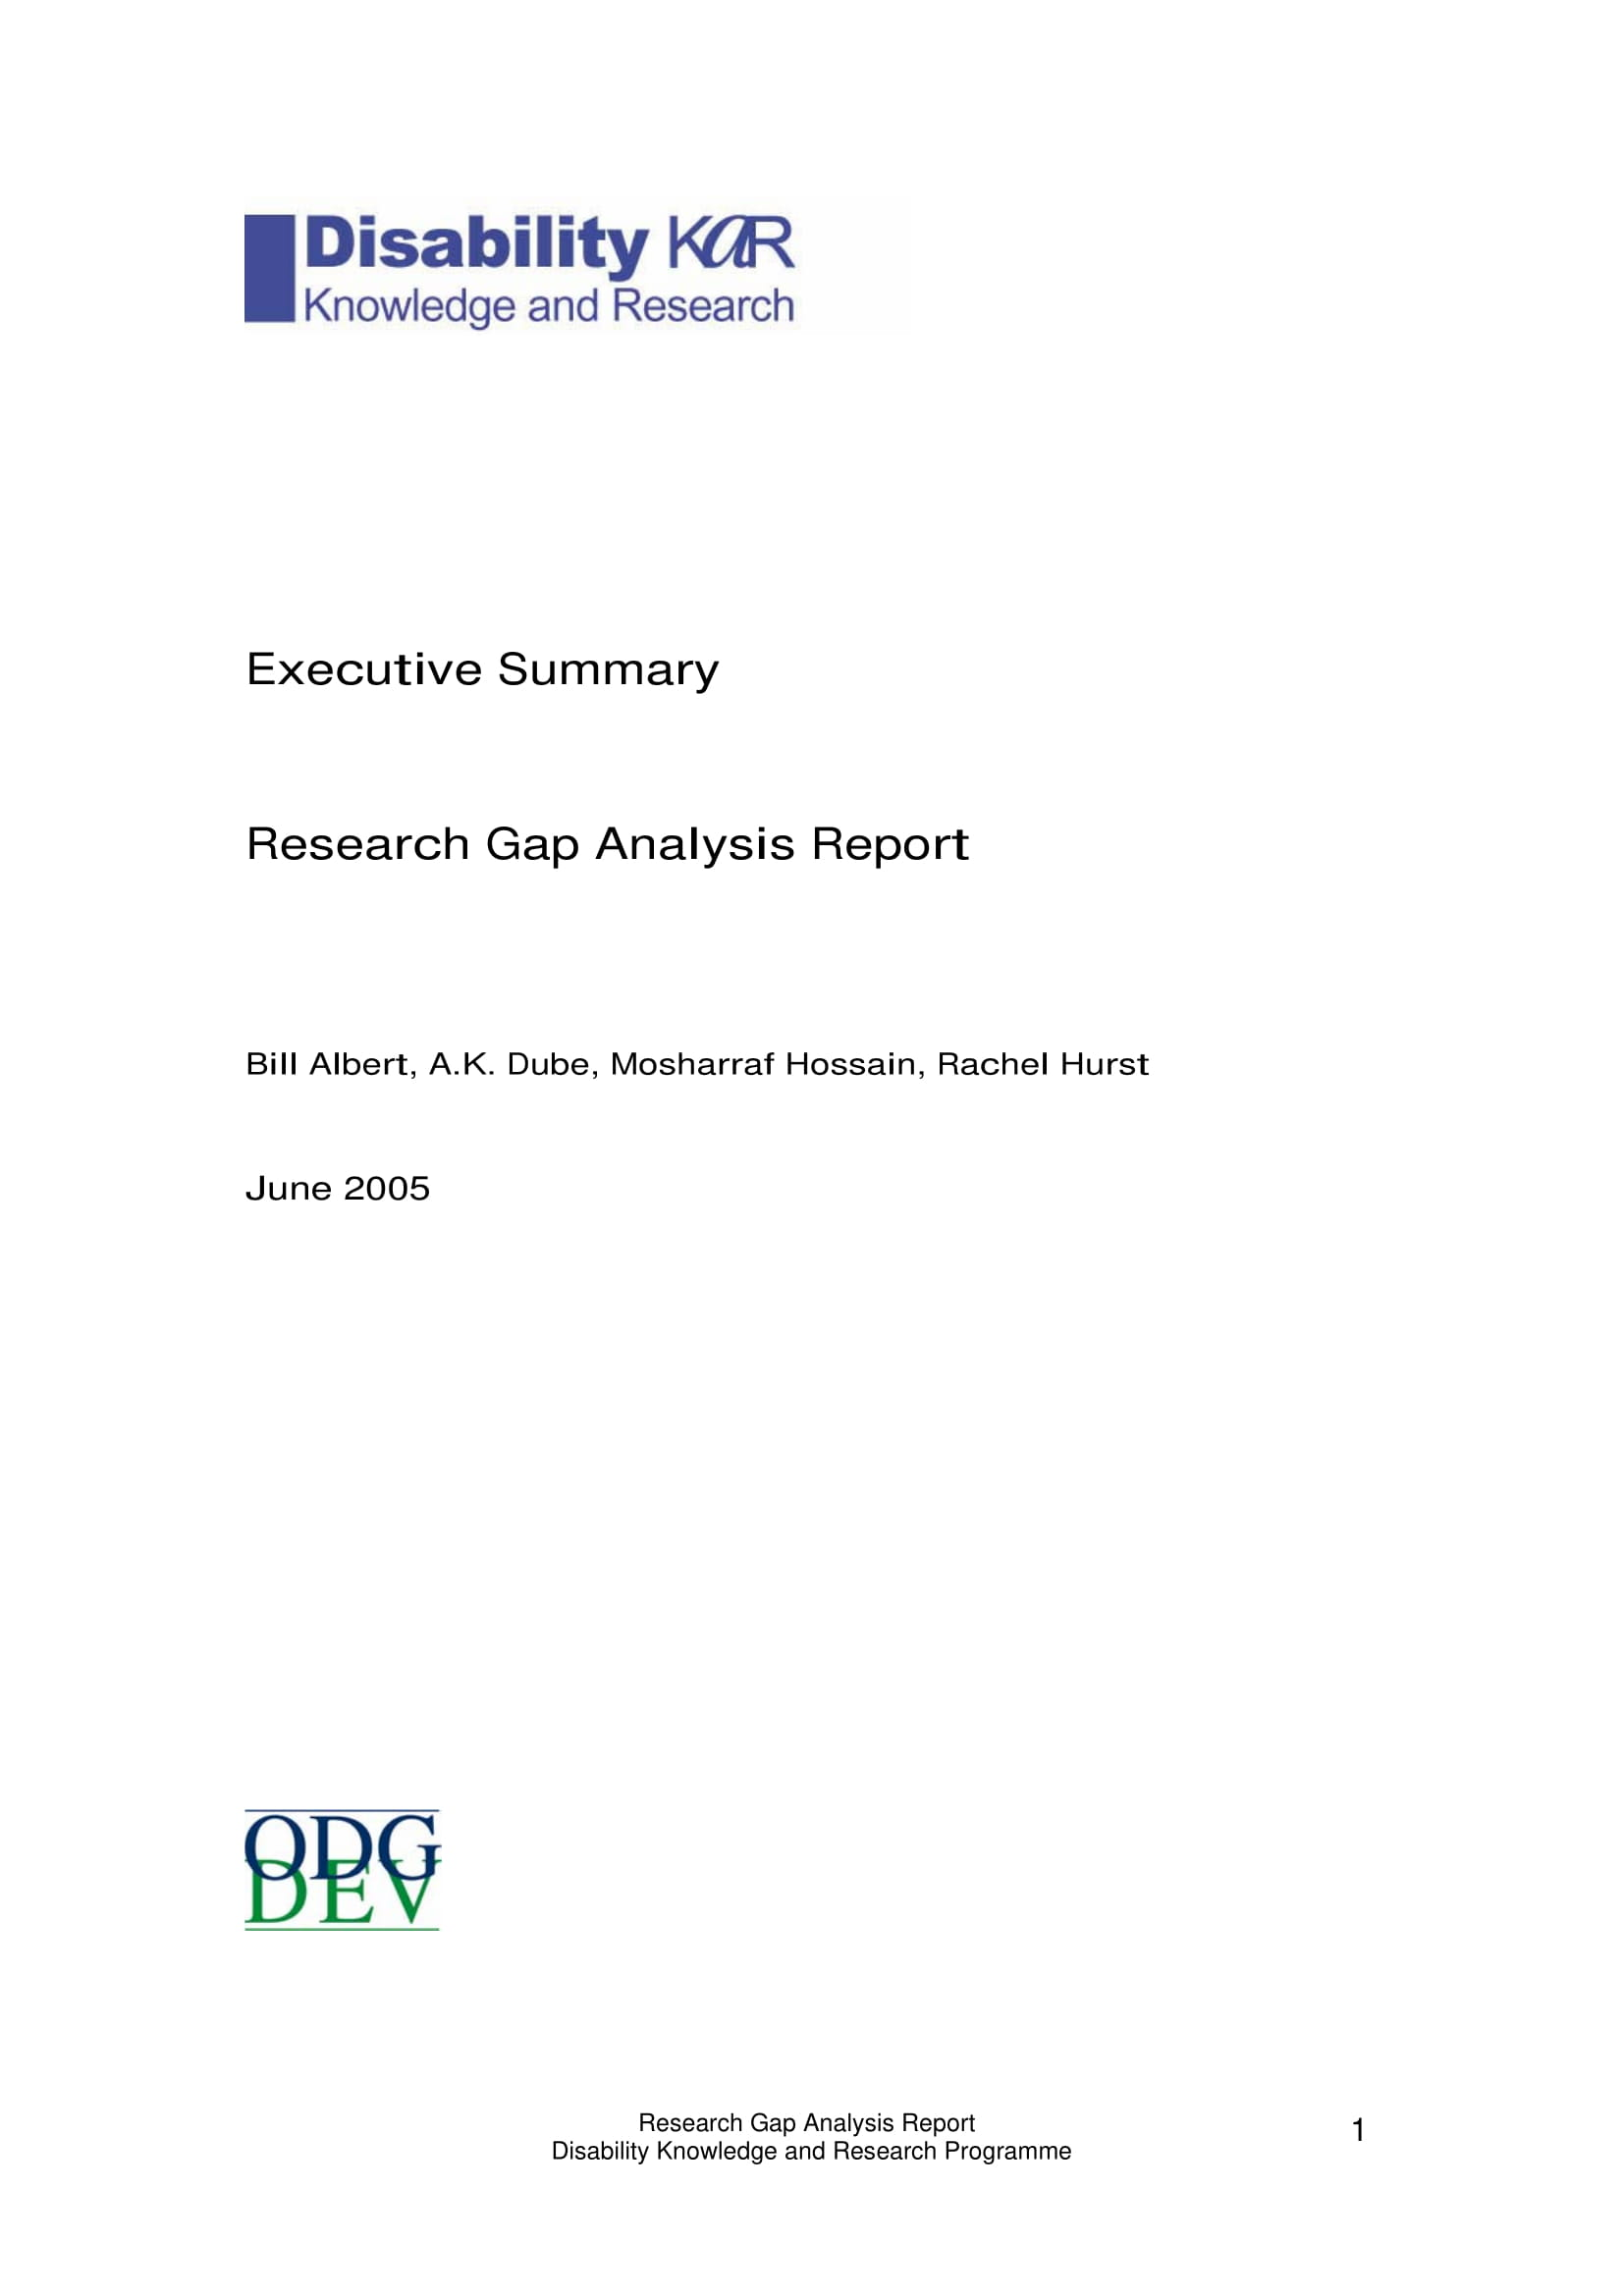 research gap analysis report executive summary example 1